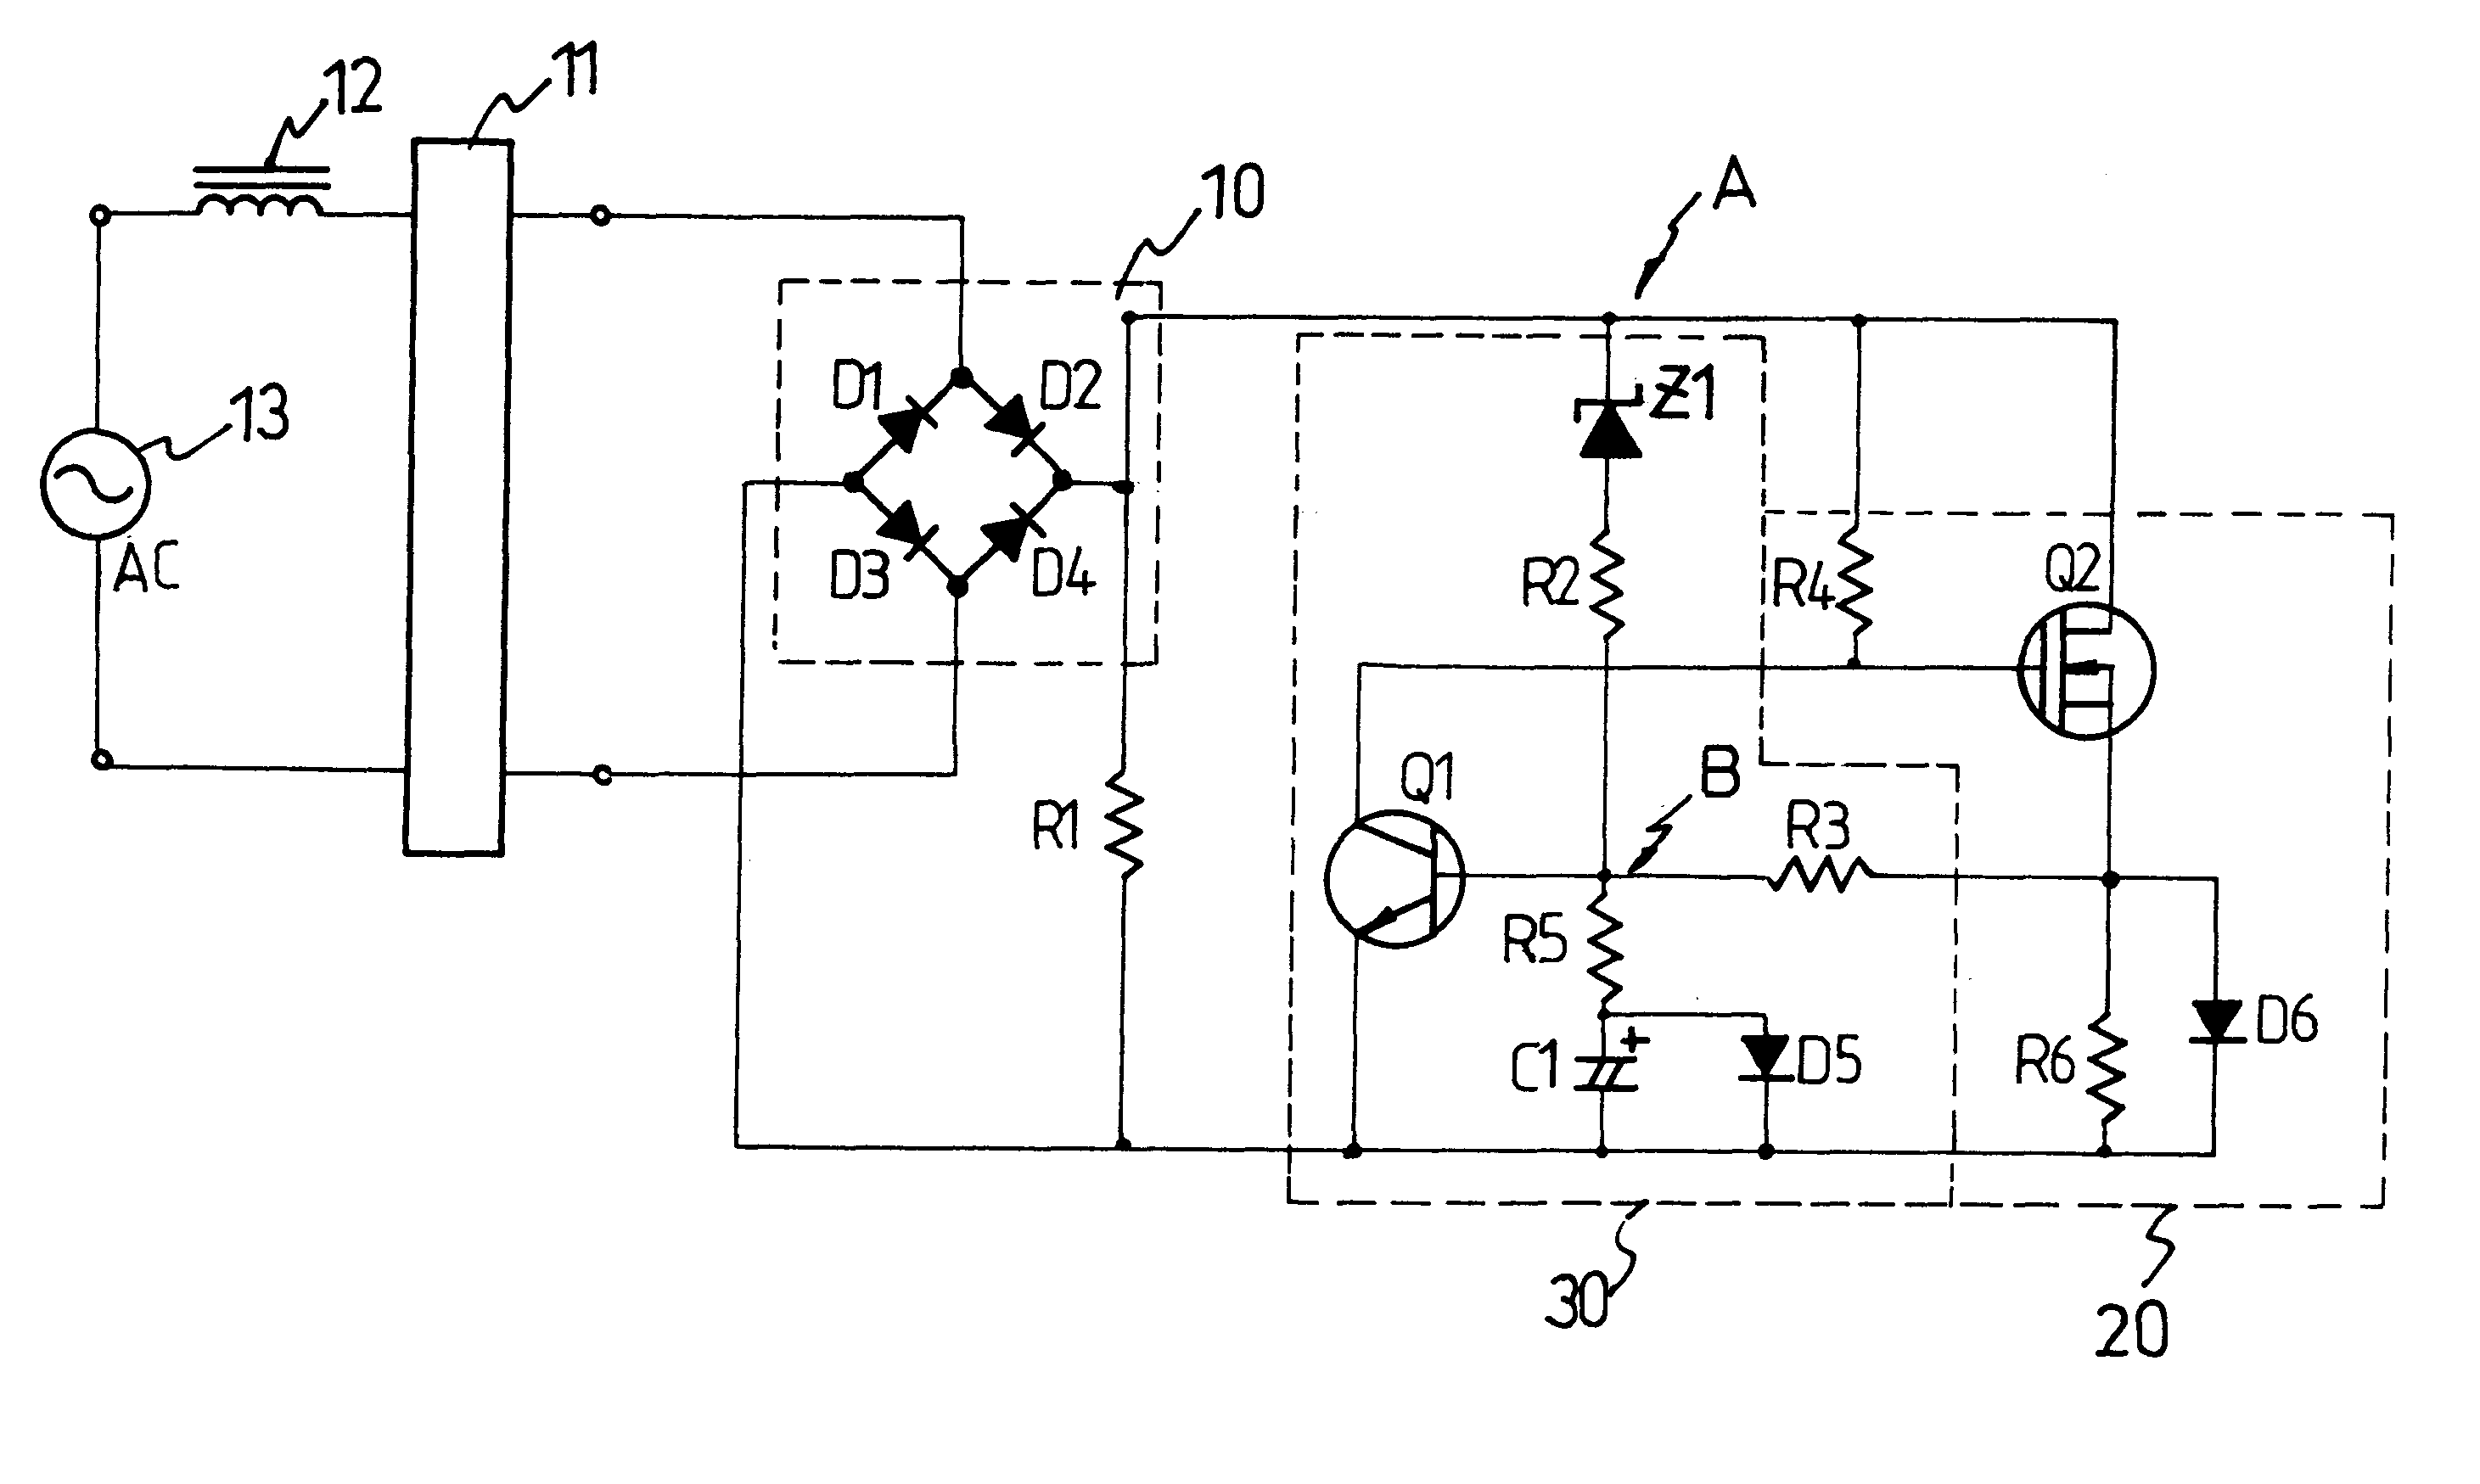 Original Preheat Circuit Uses A Starter When Starter Switch Is Closed